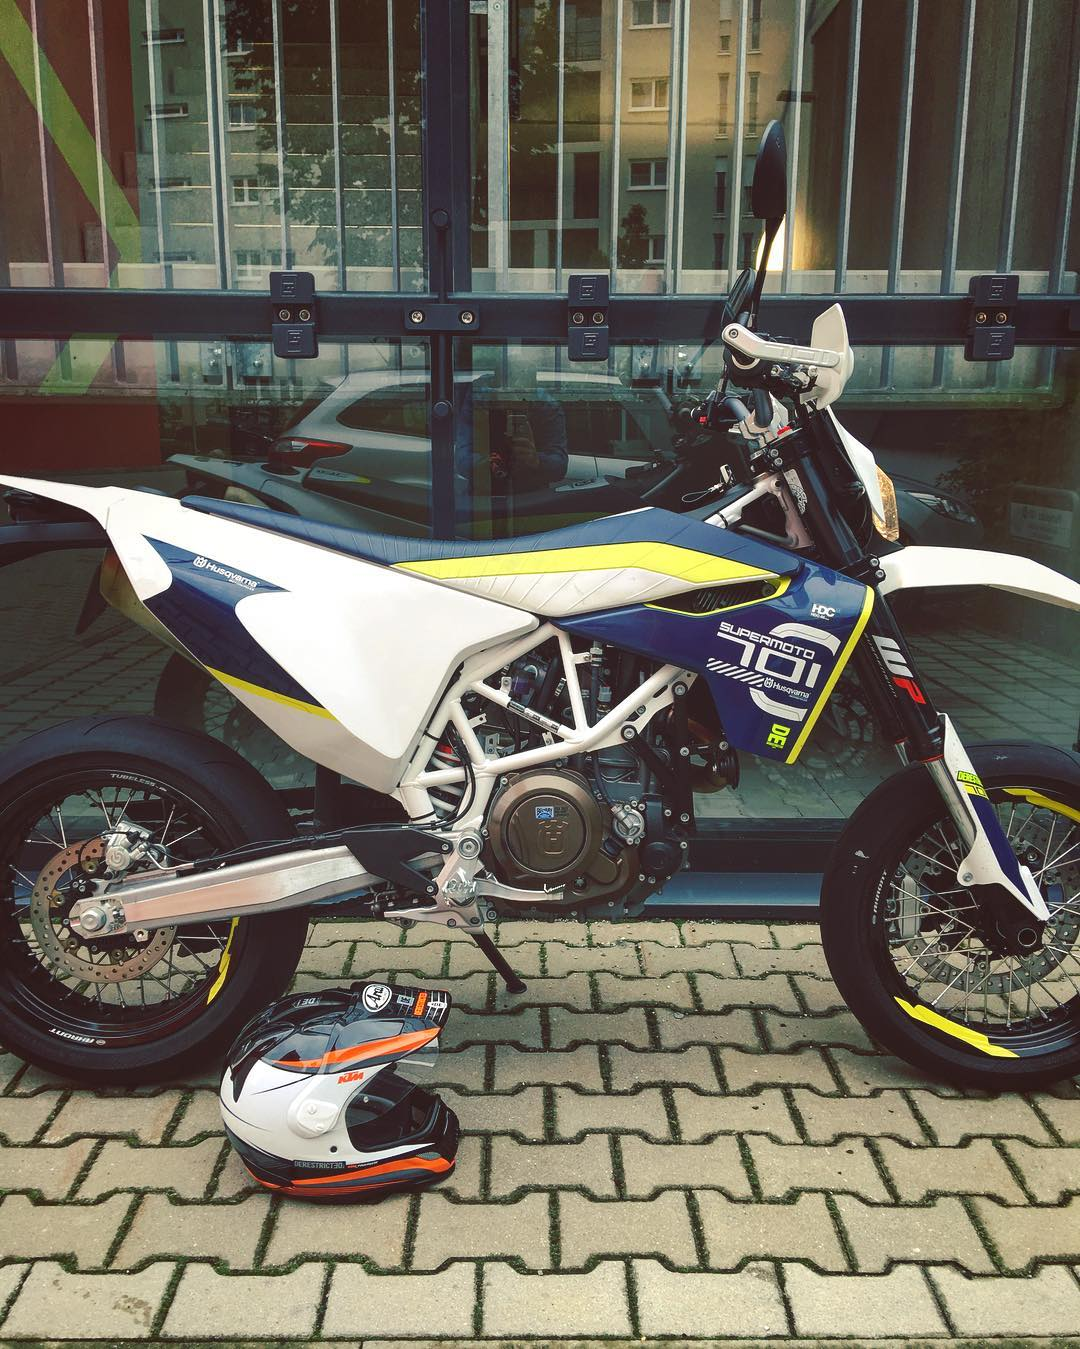 Back in the city on the #Husqvarna #701 #supermoto